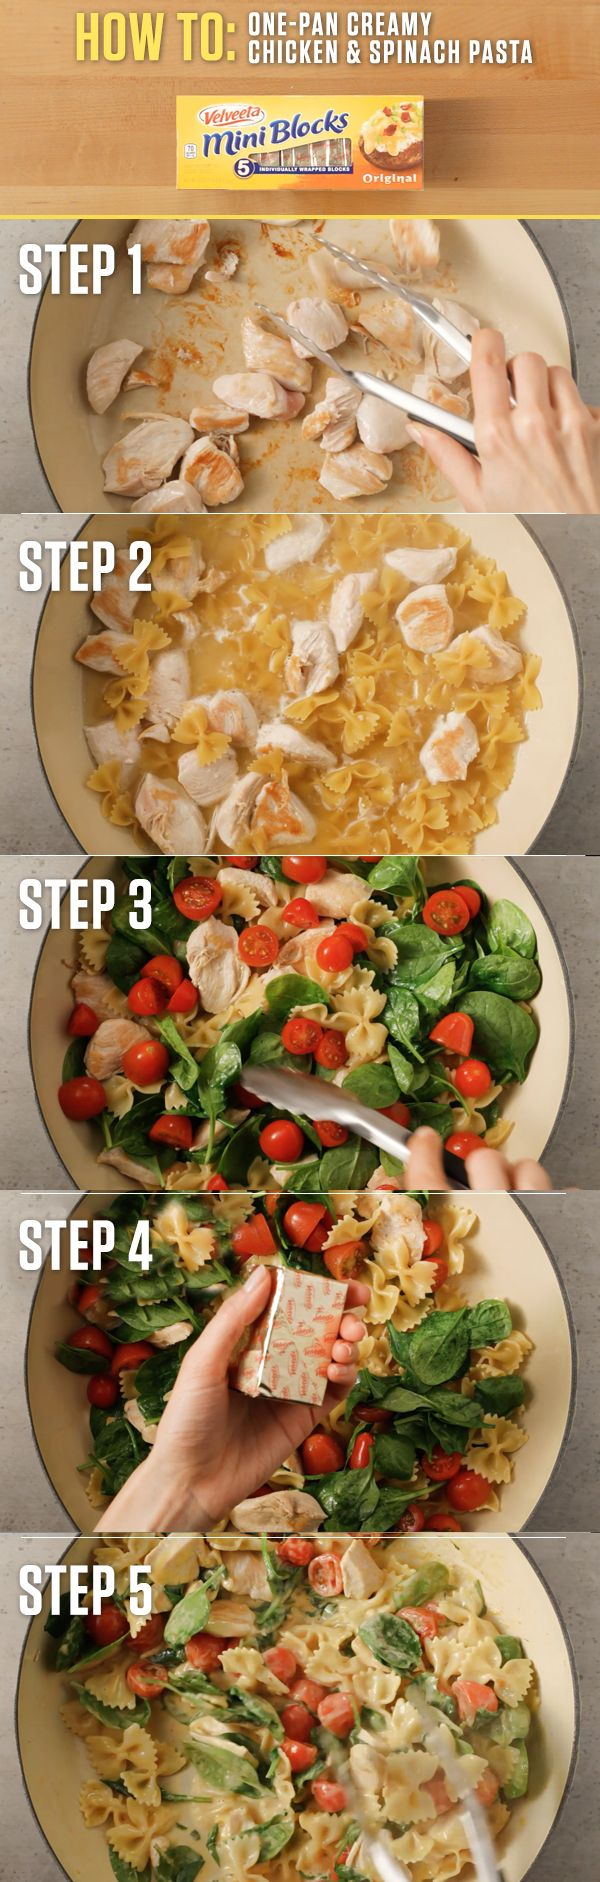 The delightful creaminess of VELVEETA kicks this Chicken and Spinach Pasta over the top with it's cheesy decadence. Get the full Liquid Gold recipe and more at http://www.kraftrecipes.com/velveeta.aspx